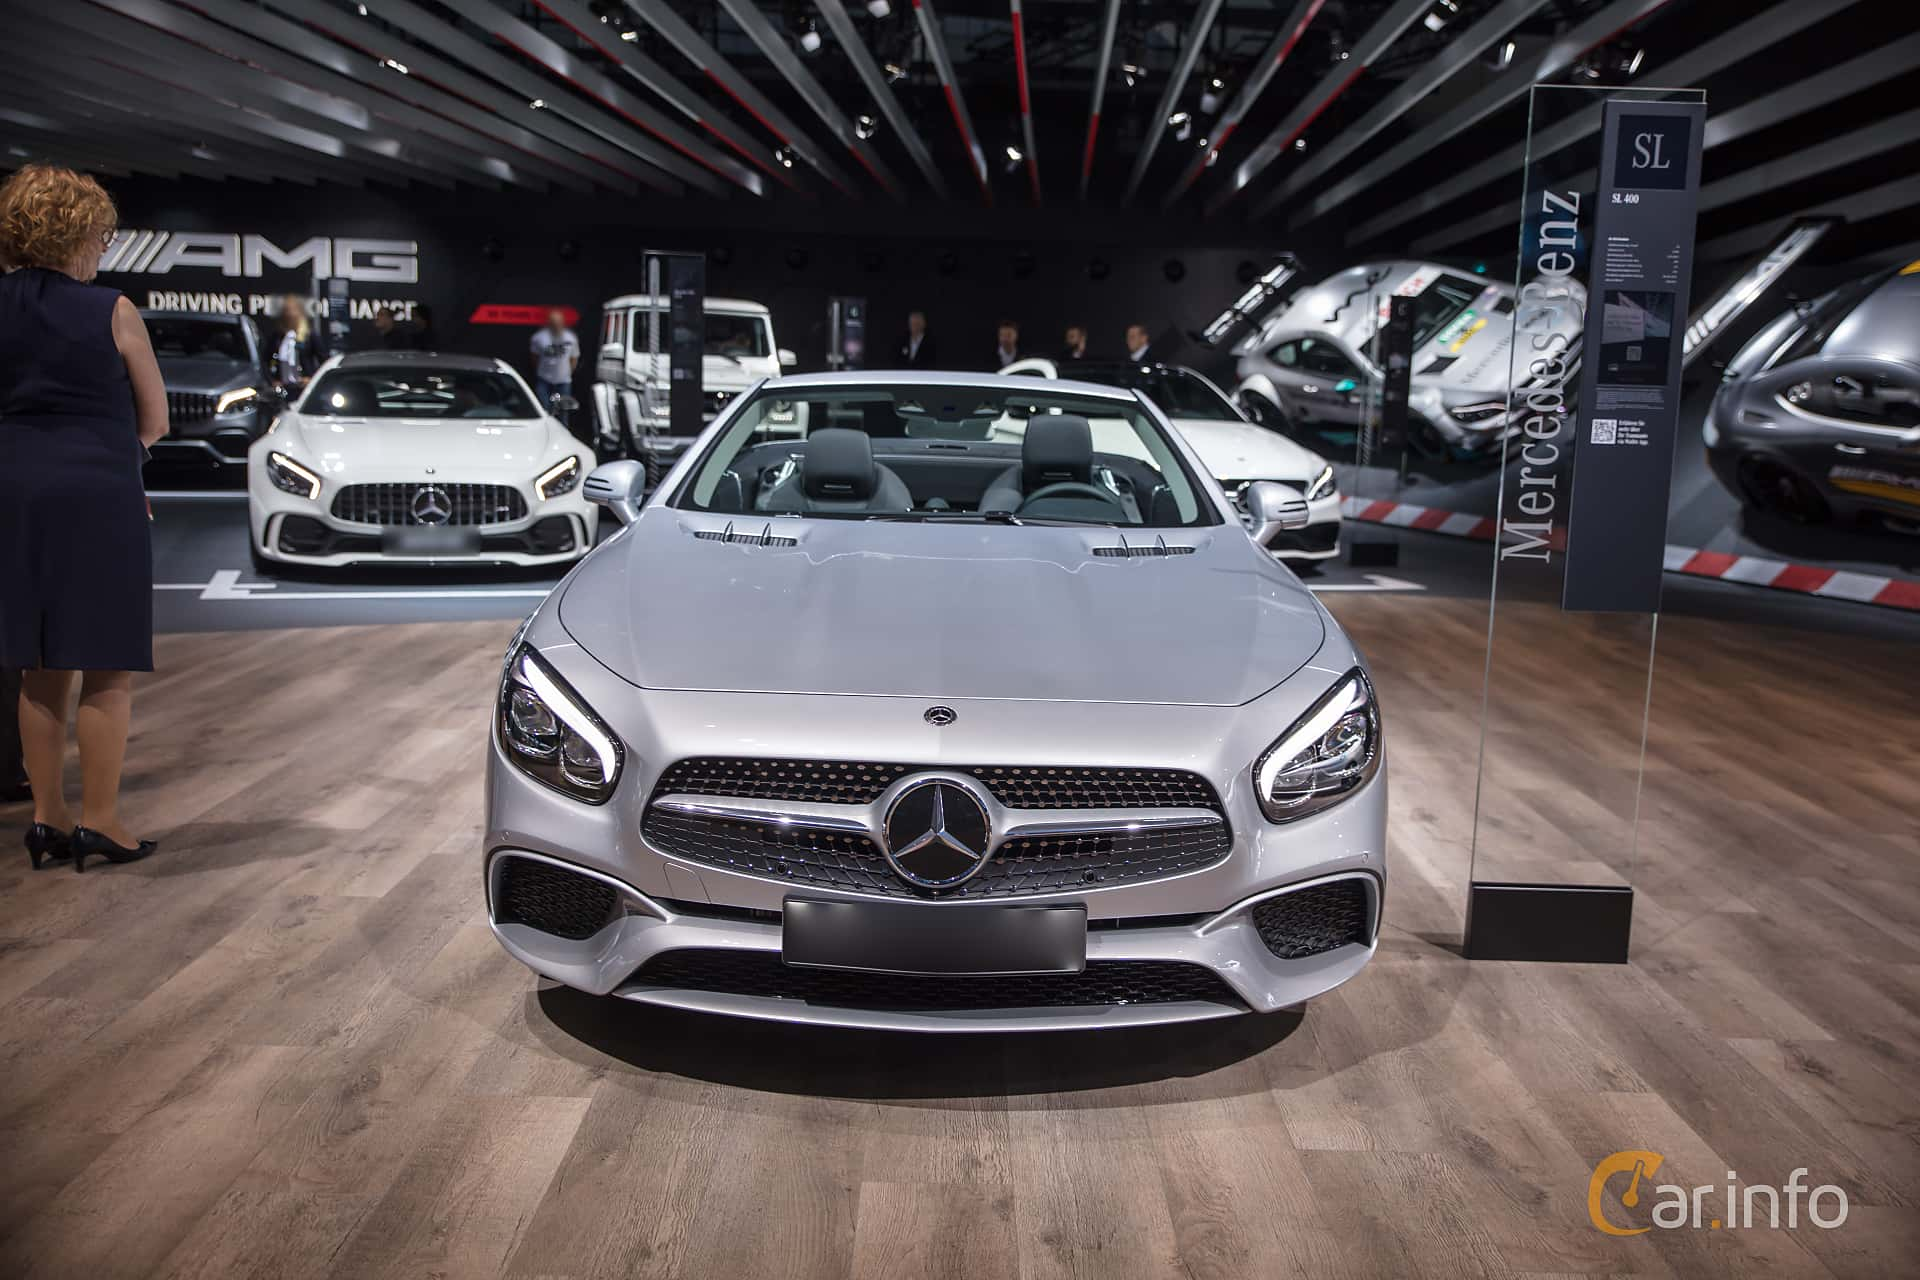 Mercedes benz sl 400 3 0 v6 9g tronic 367hp 2018 at iaa 2017 for Mercedes benz 400 se